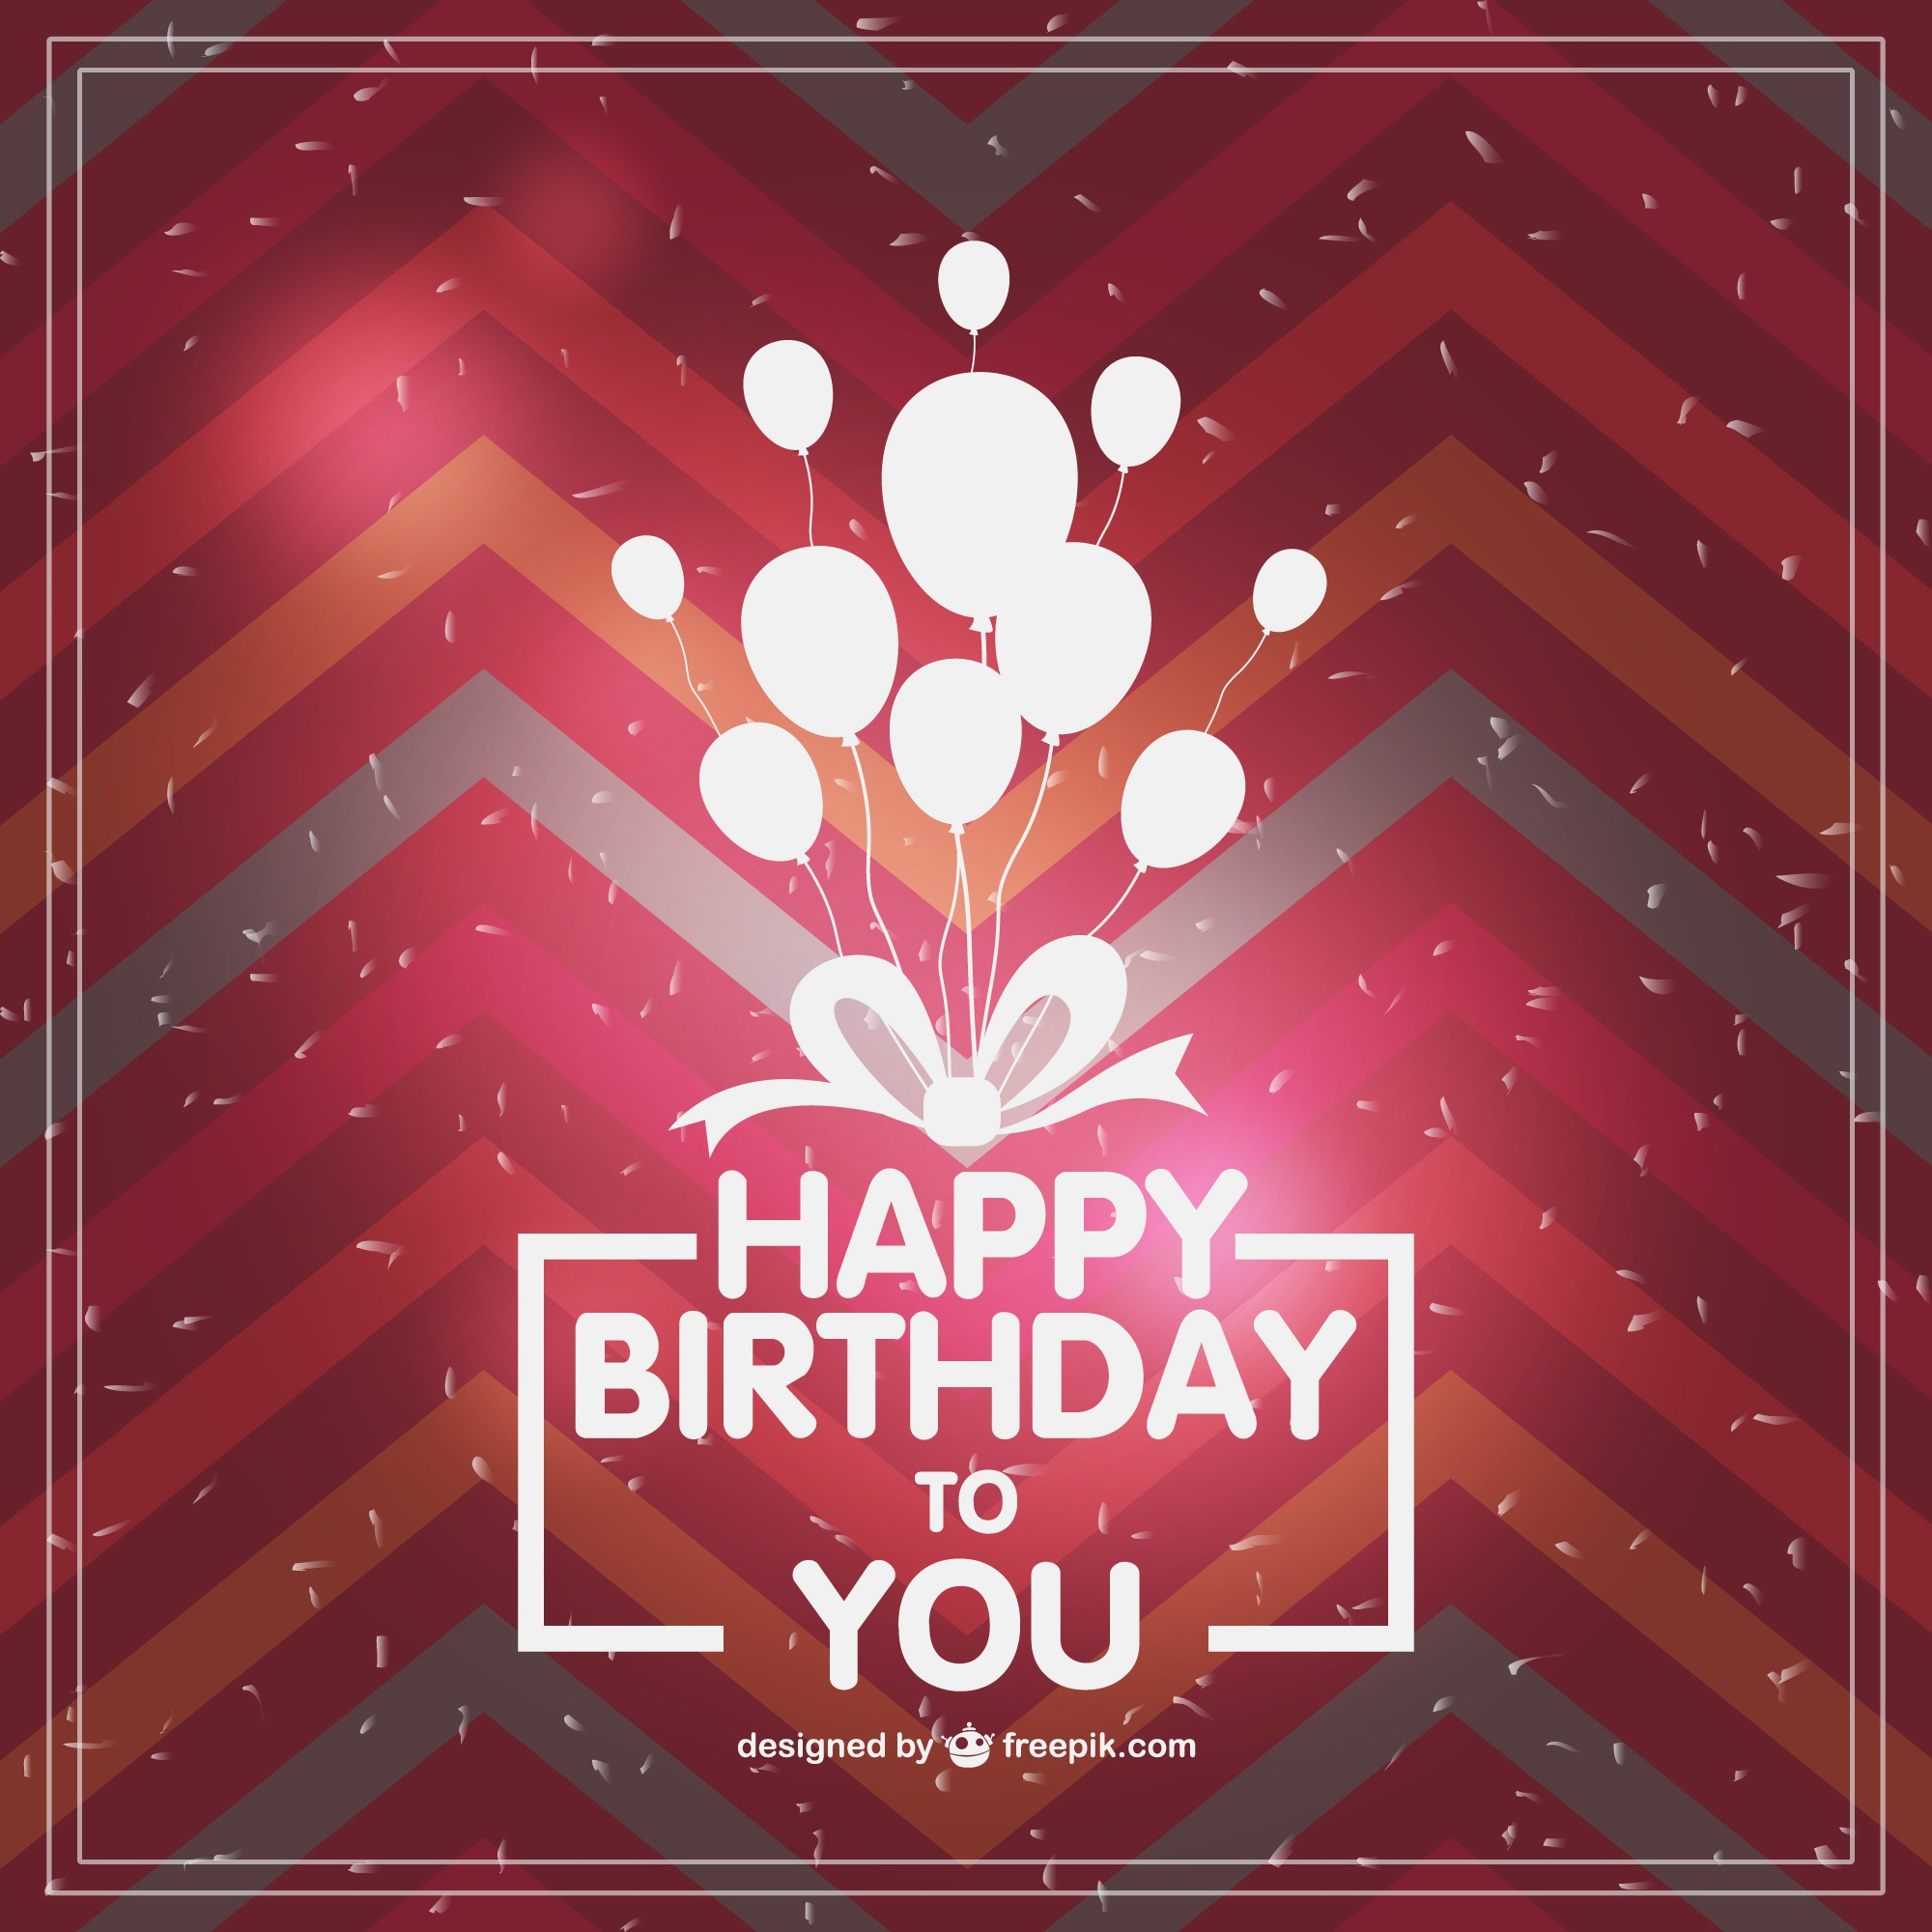 Retro typographic birthday card